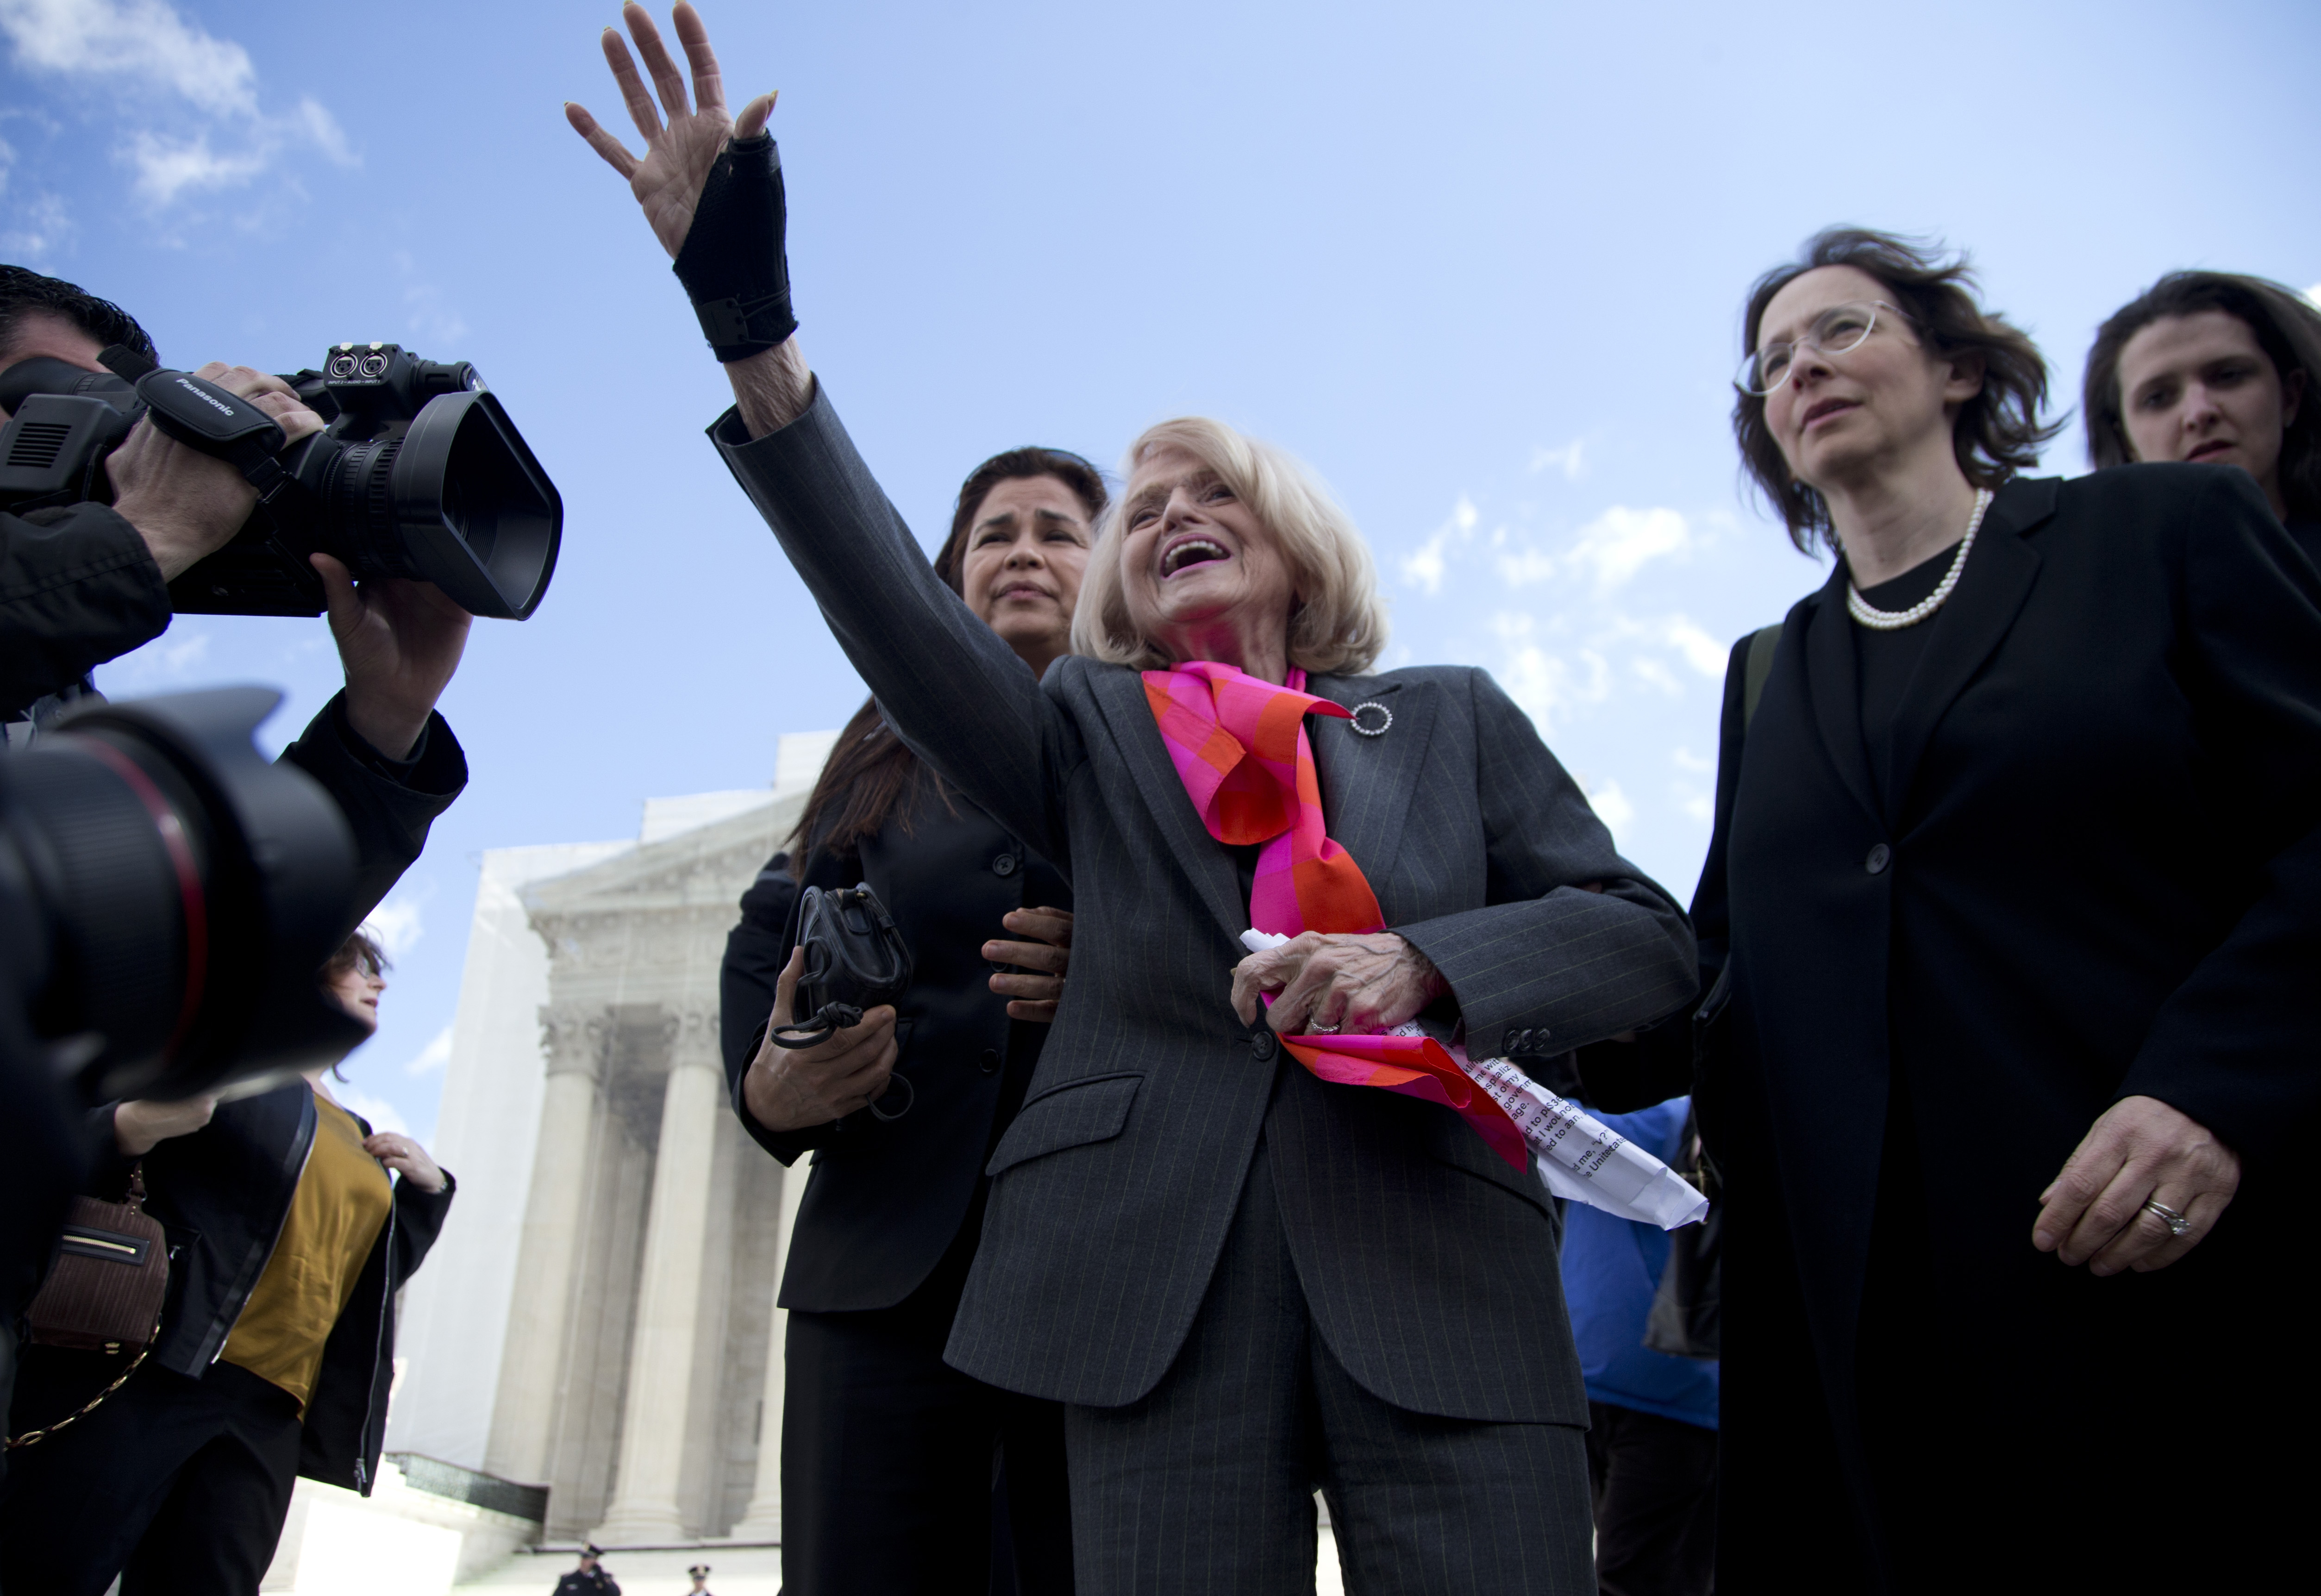 How The Court Ruled on DOMA and Prop. 8